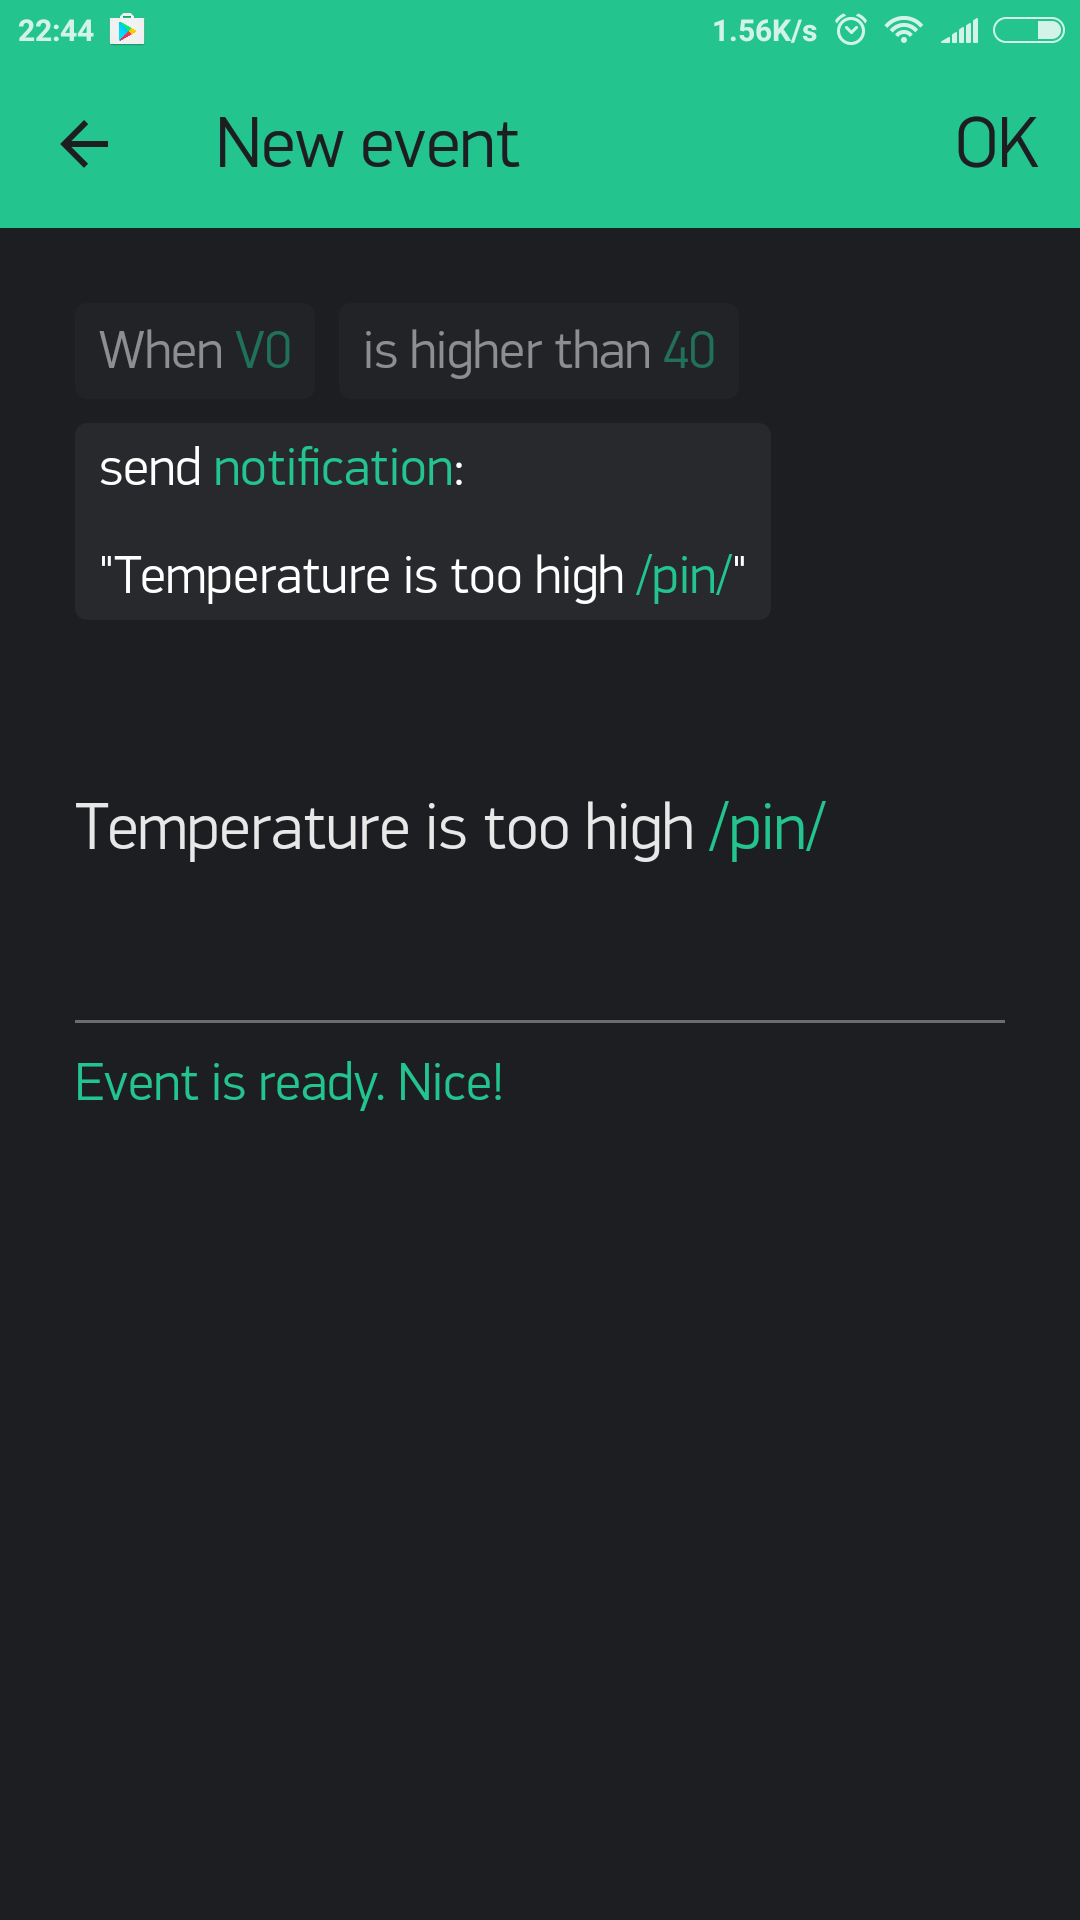 Blynk Server Wiringpi I2c Functions Note Dont Forget To Add Notification Widget